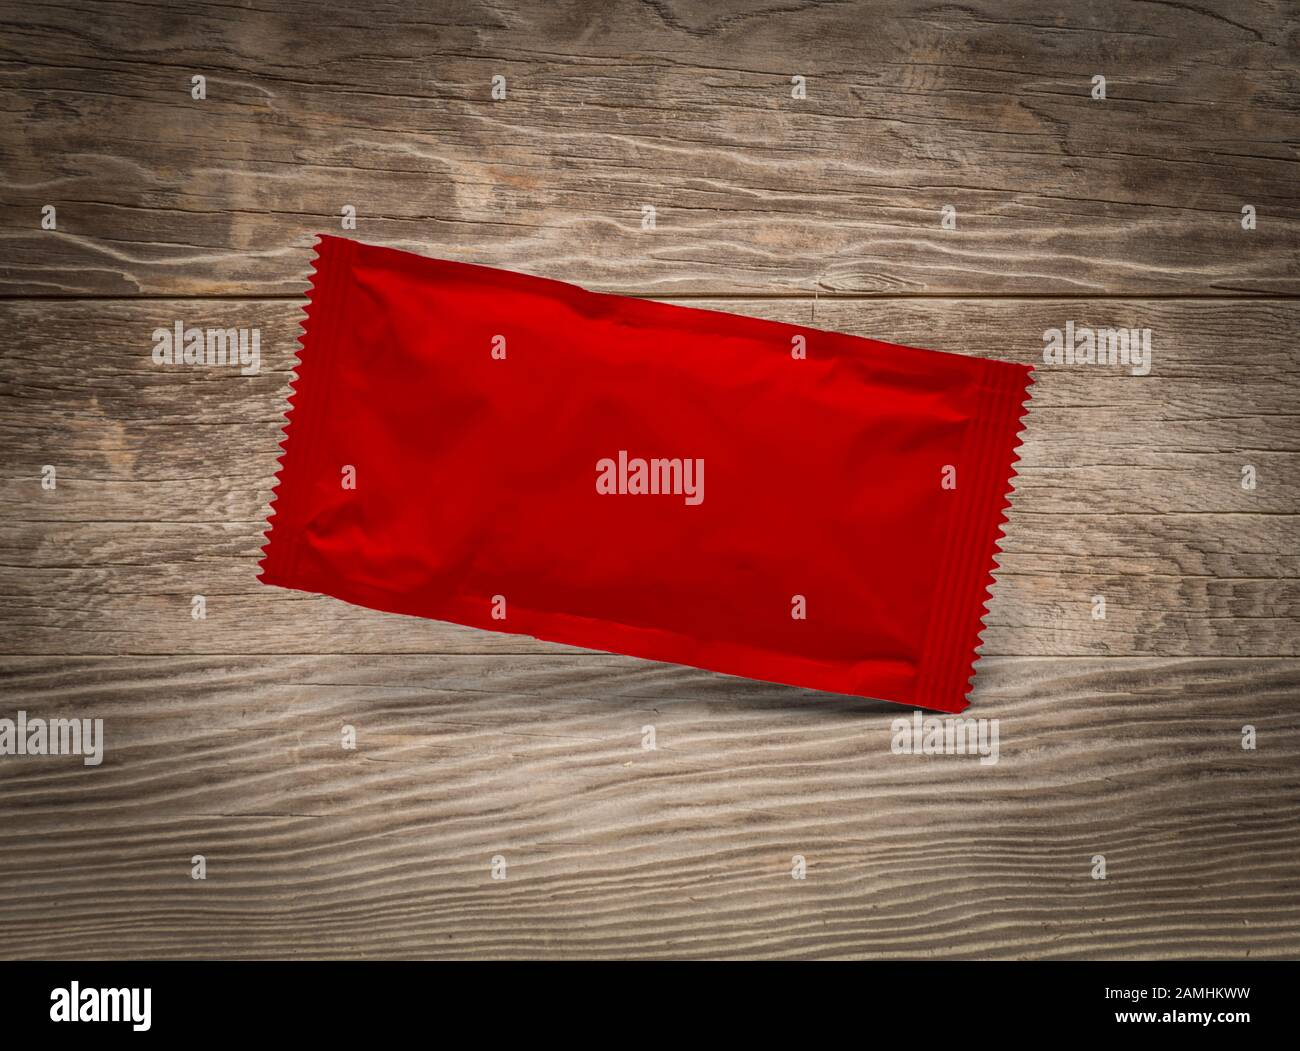 Blank Red Condiment Packet Floating on Aged Wood Background. Stock Photo